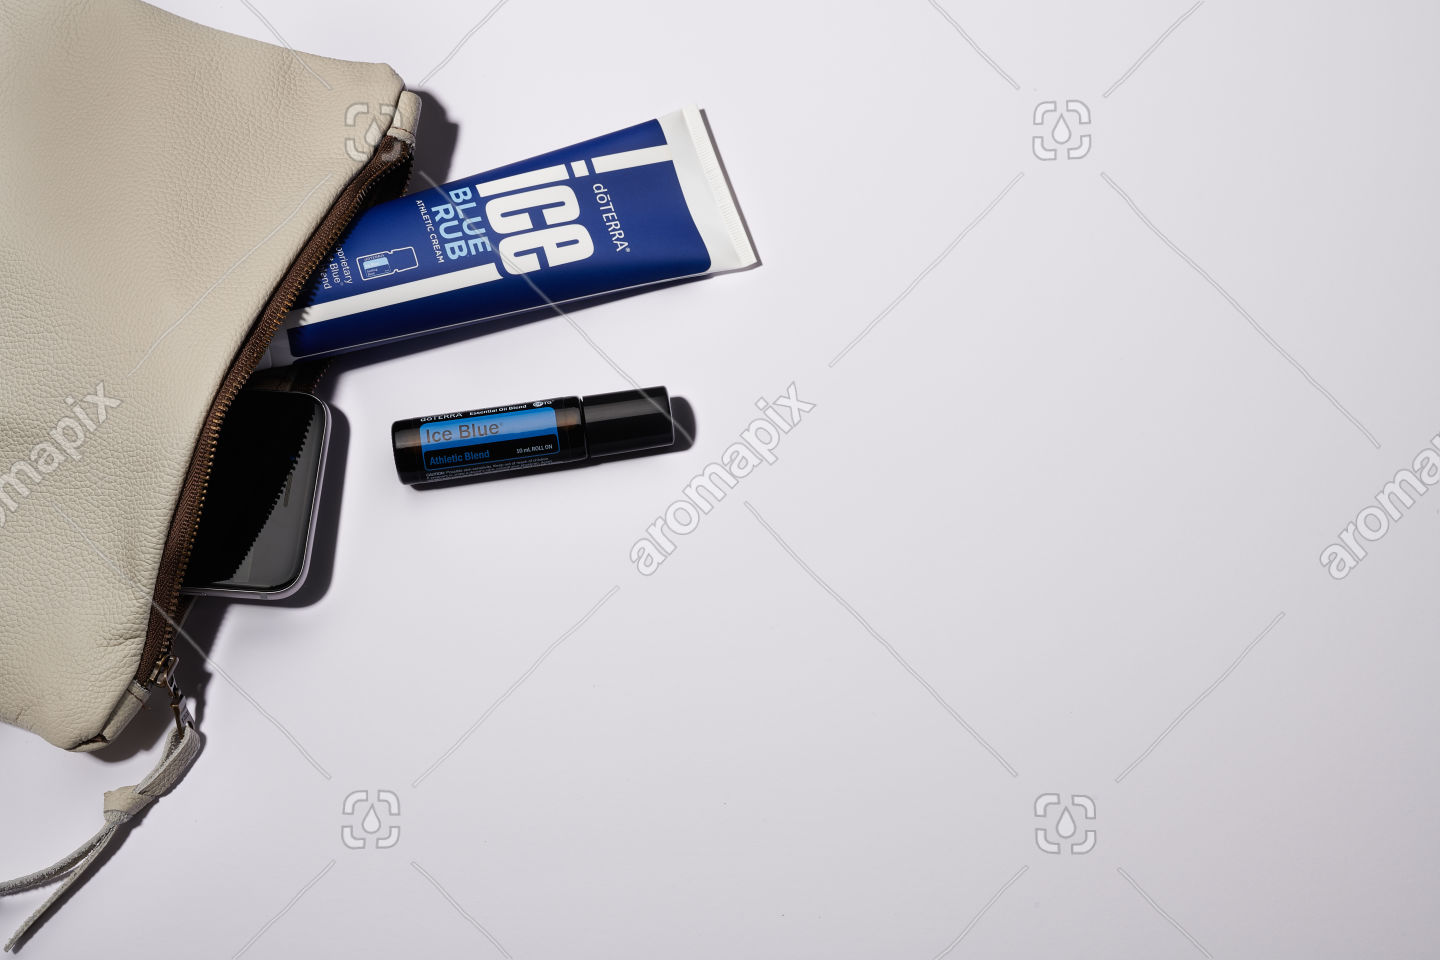 Woman's clutch with Ice Blue Rub, Ice Blue Roll On and phone on white background